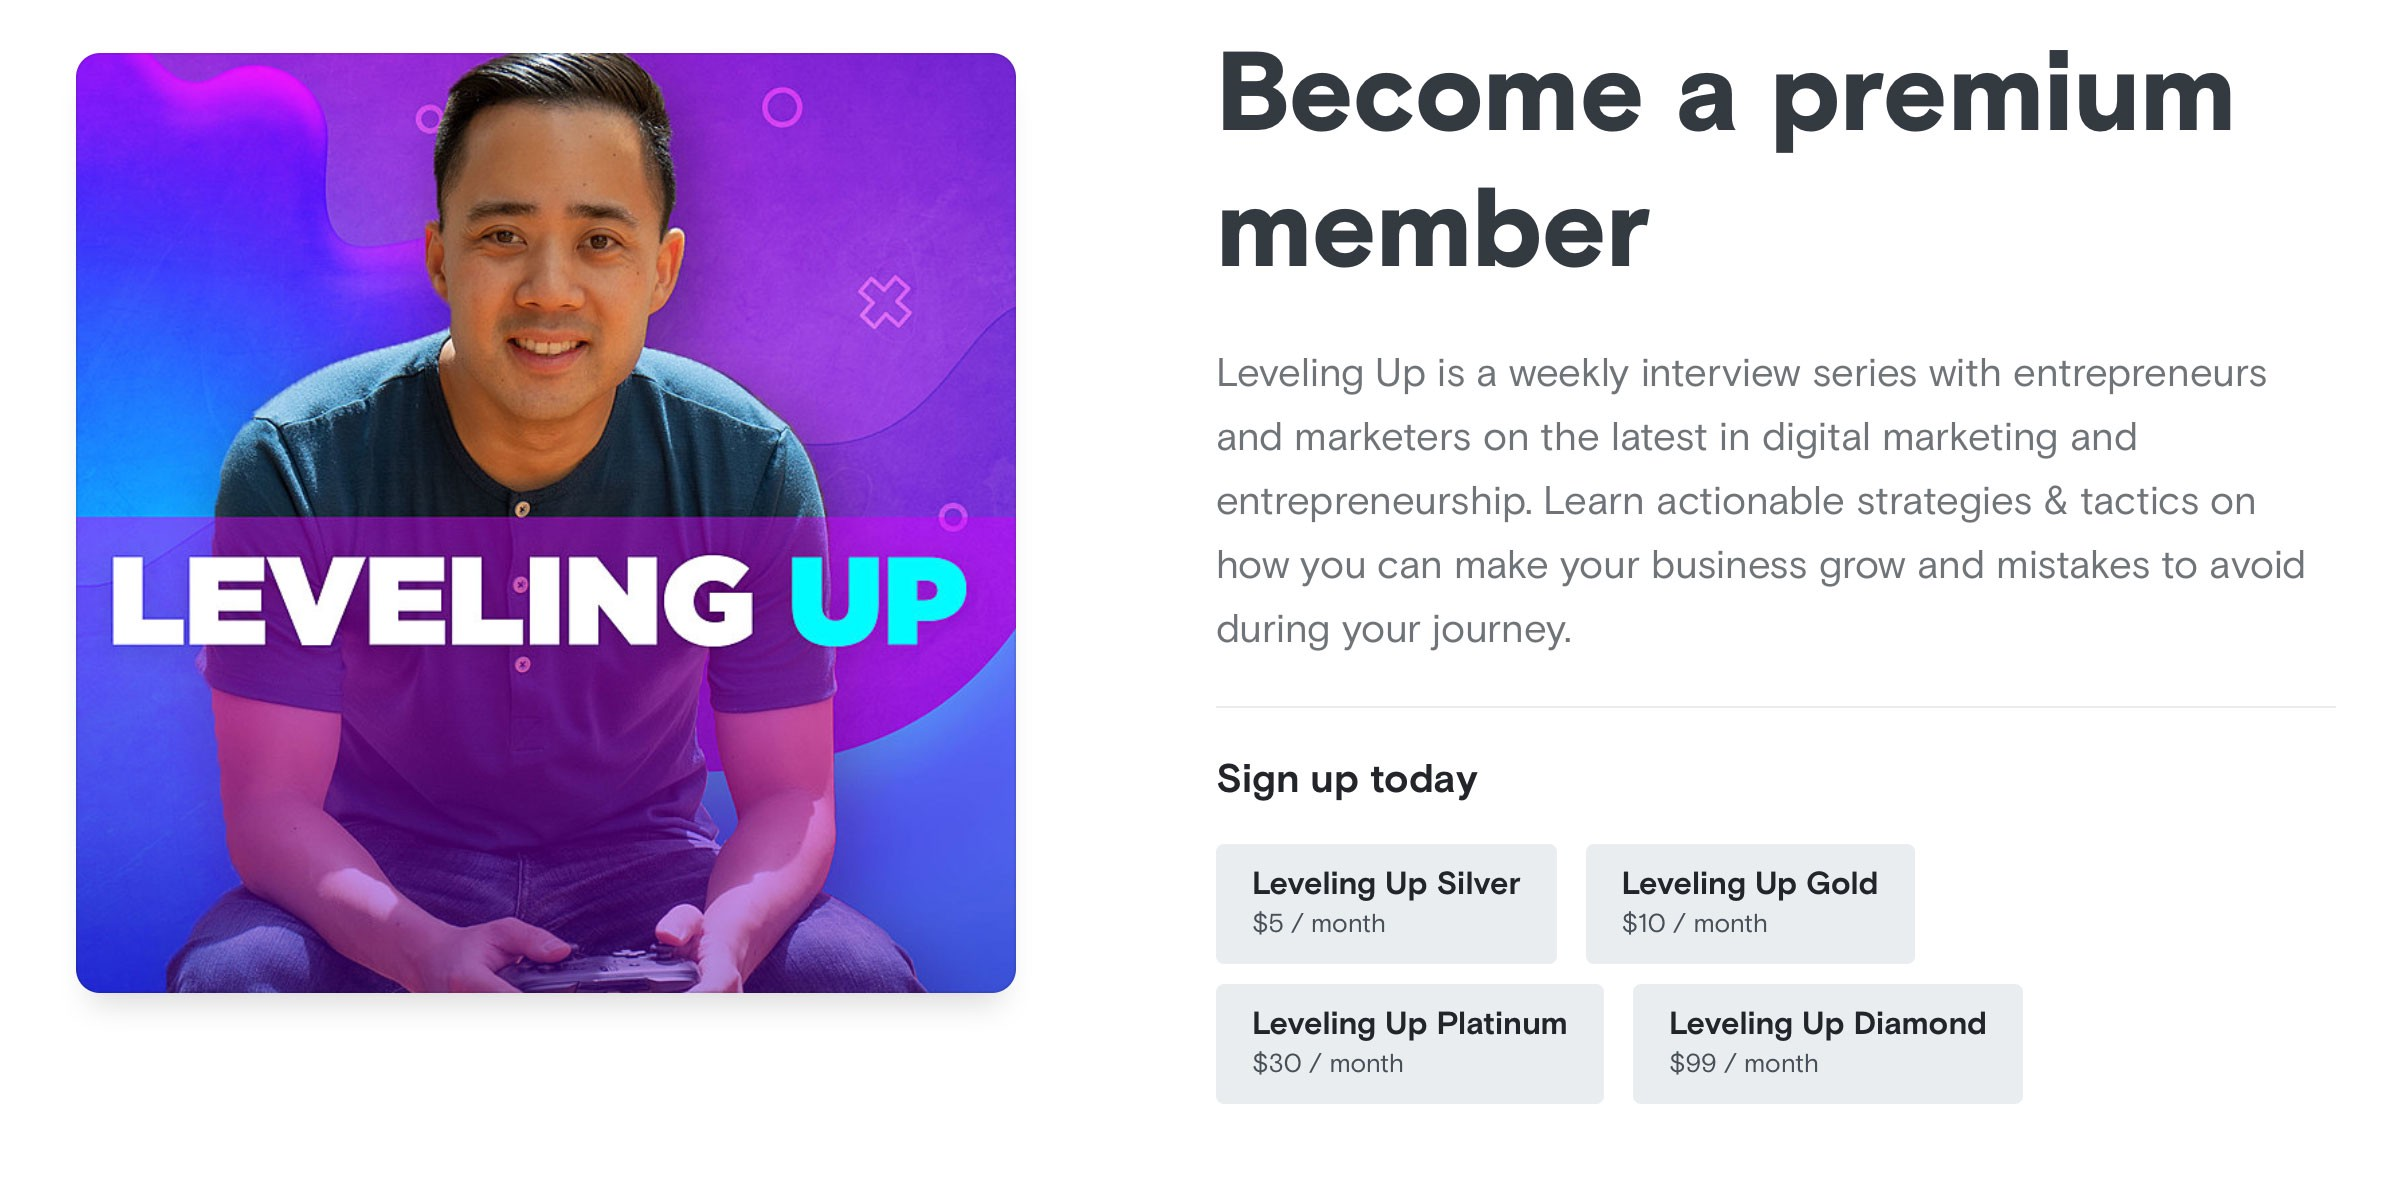 """Podcast artwork for """"Leveling Up"""" and list of benefits for premium members"""